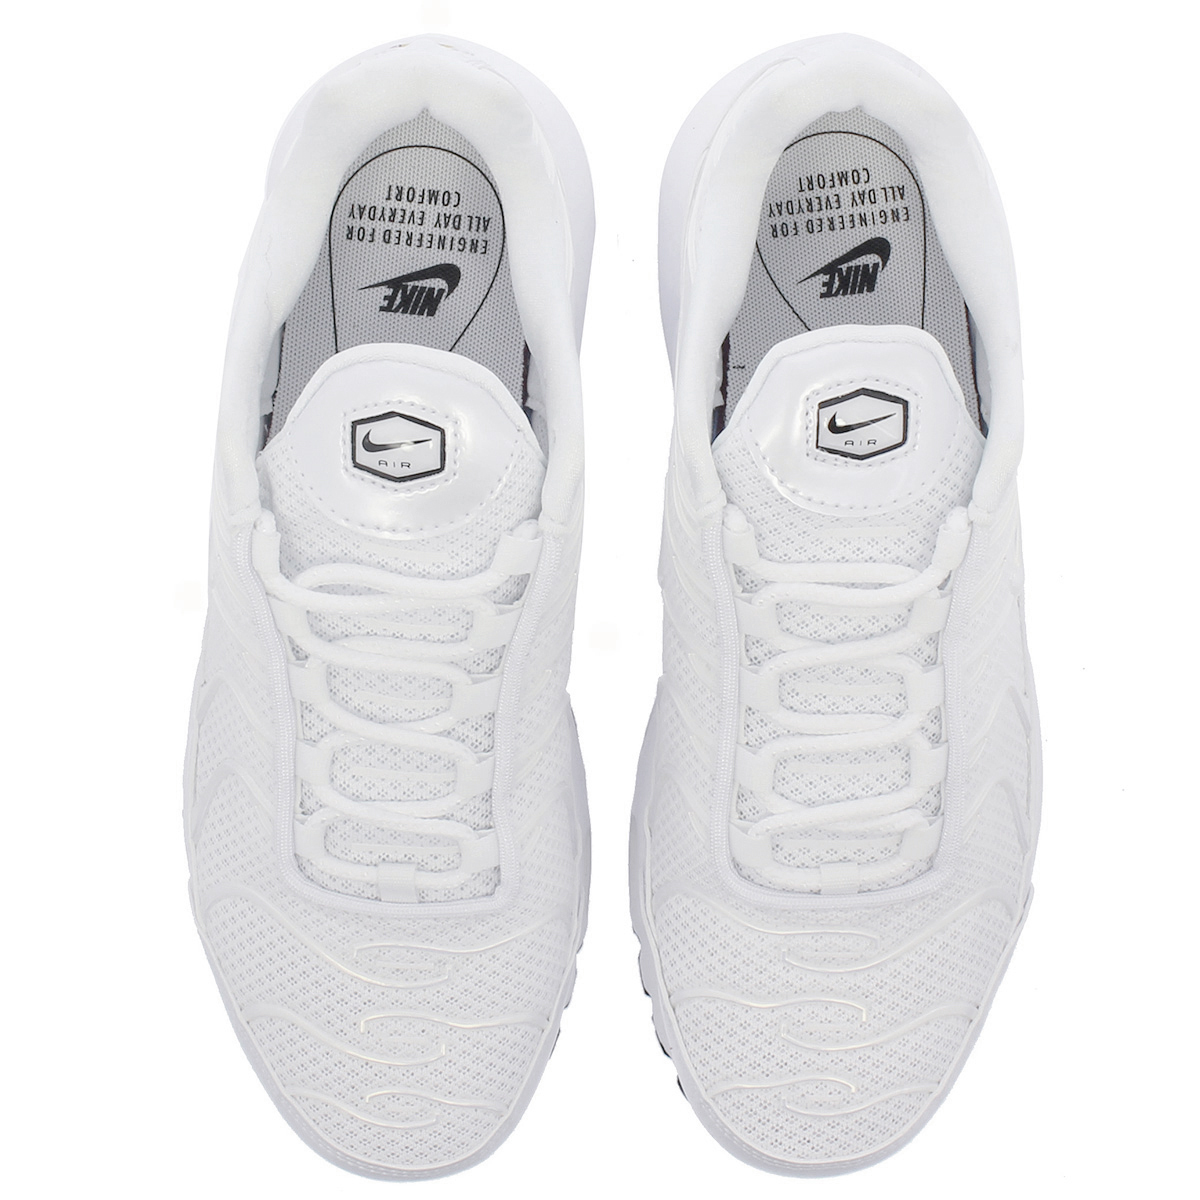 super popular f964b 6e0c2 ... wholesale nike wmns plus premium nike women air max plus premium white  white white black 848891